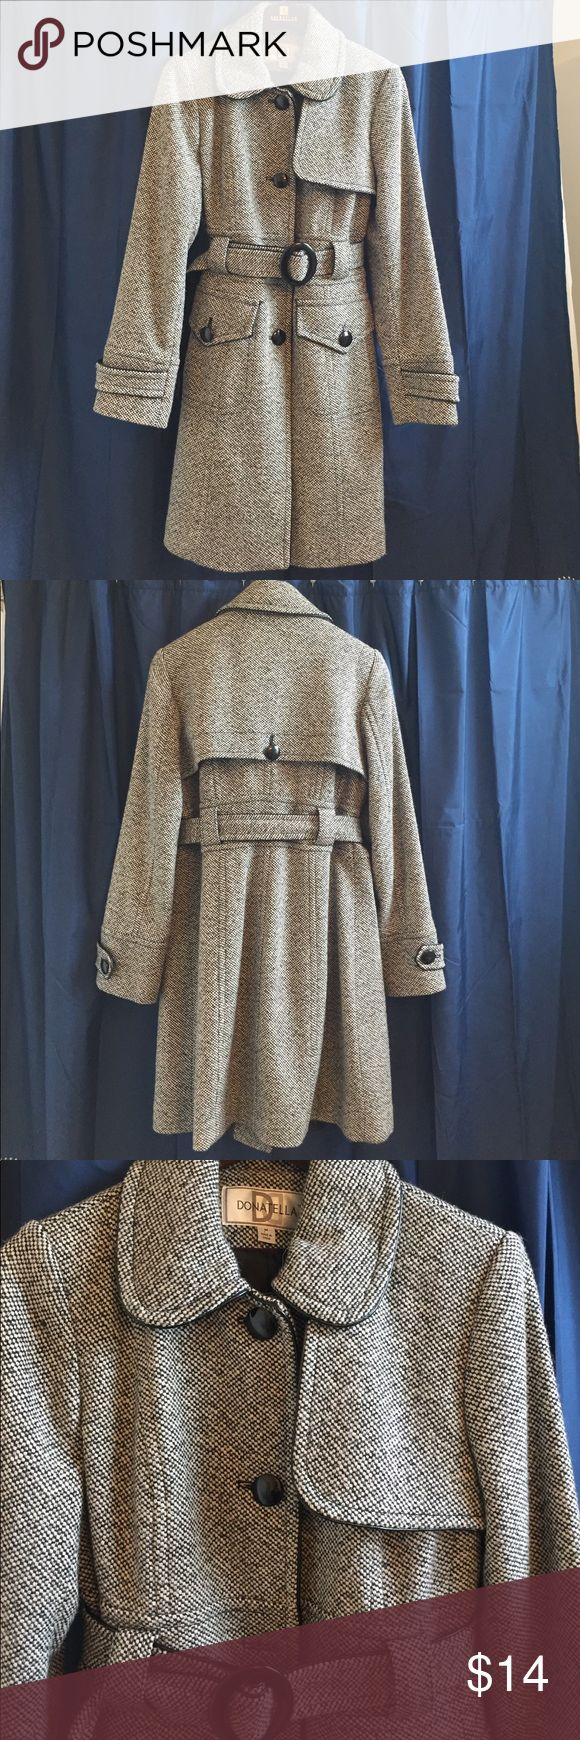 Women's medium weight knee length coat Good condition but has one button missing (as seen in picture). Belt covers where missing button would be. Comfortable and perfect length. Jackets & Coats Trench Coats